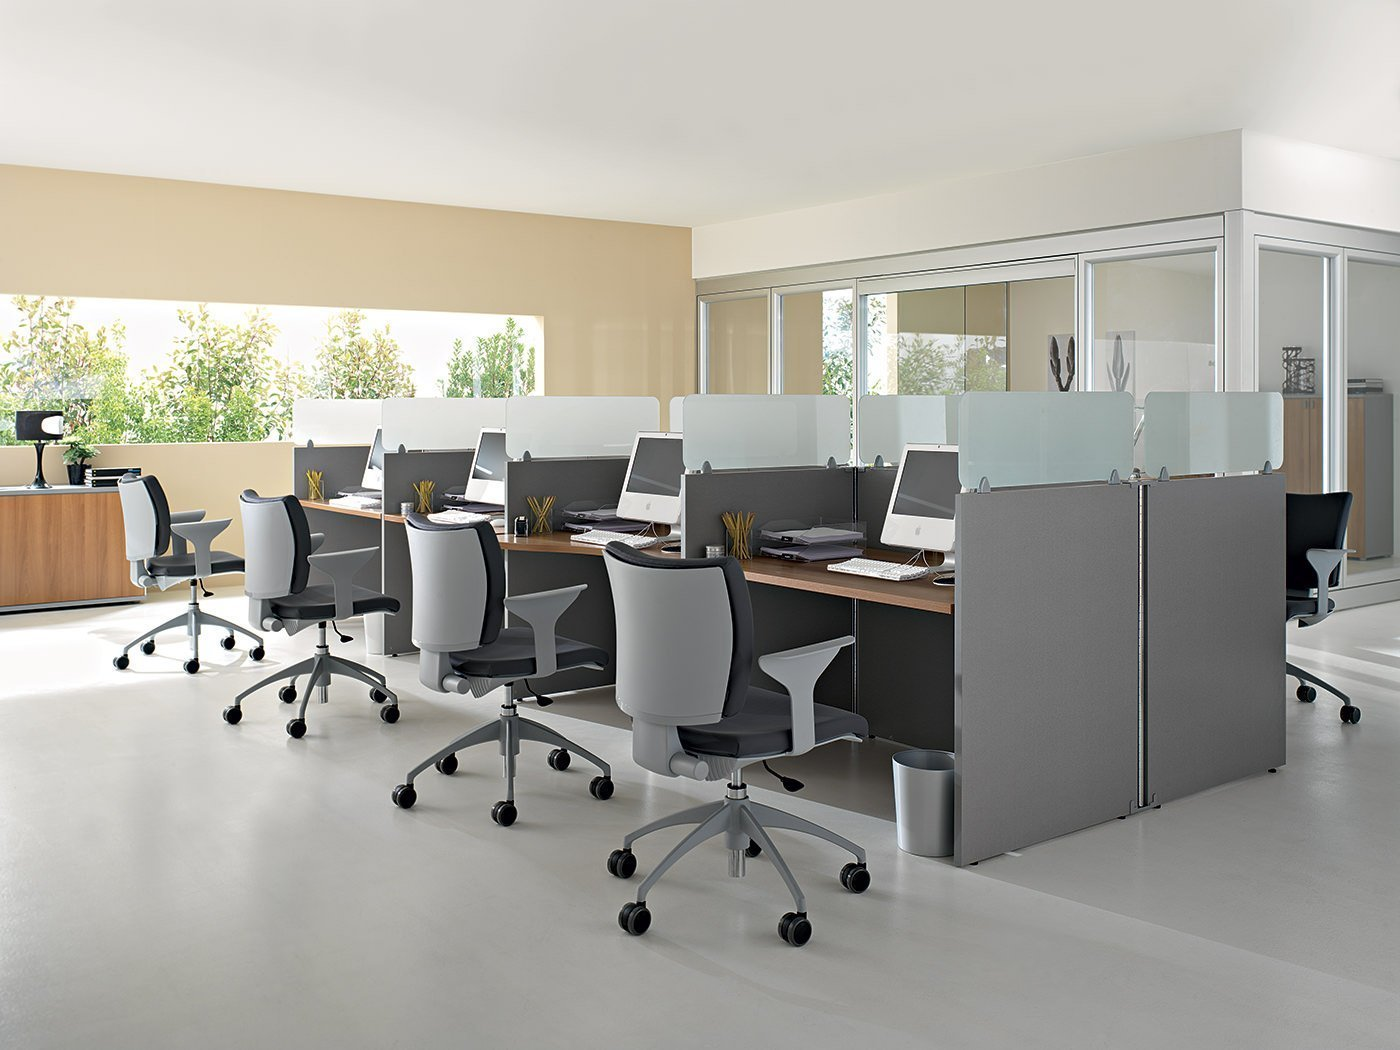 Technoplanet furniture operating office for Arredamento per ufficio